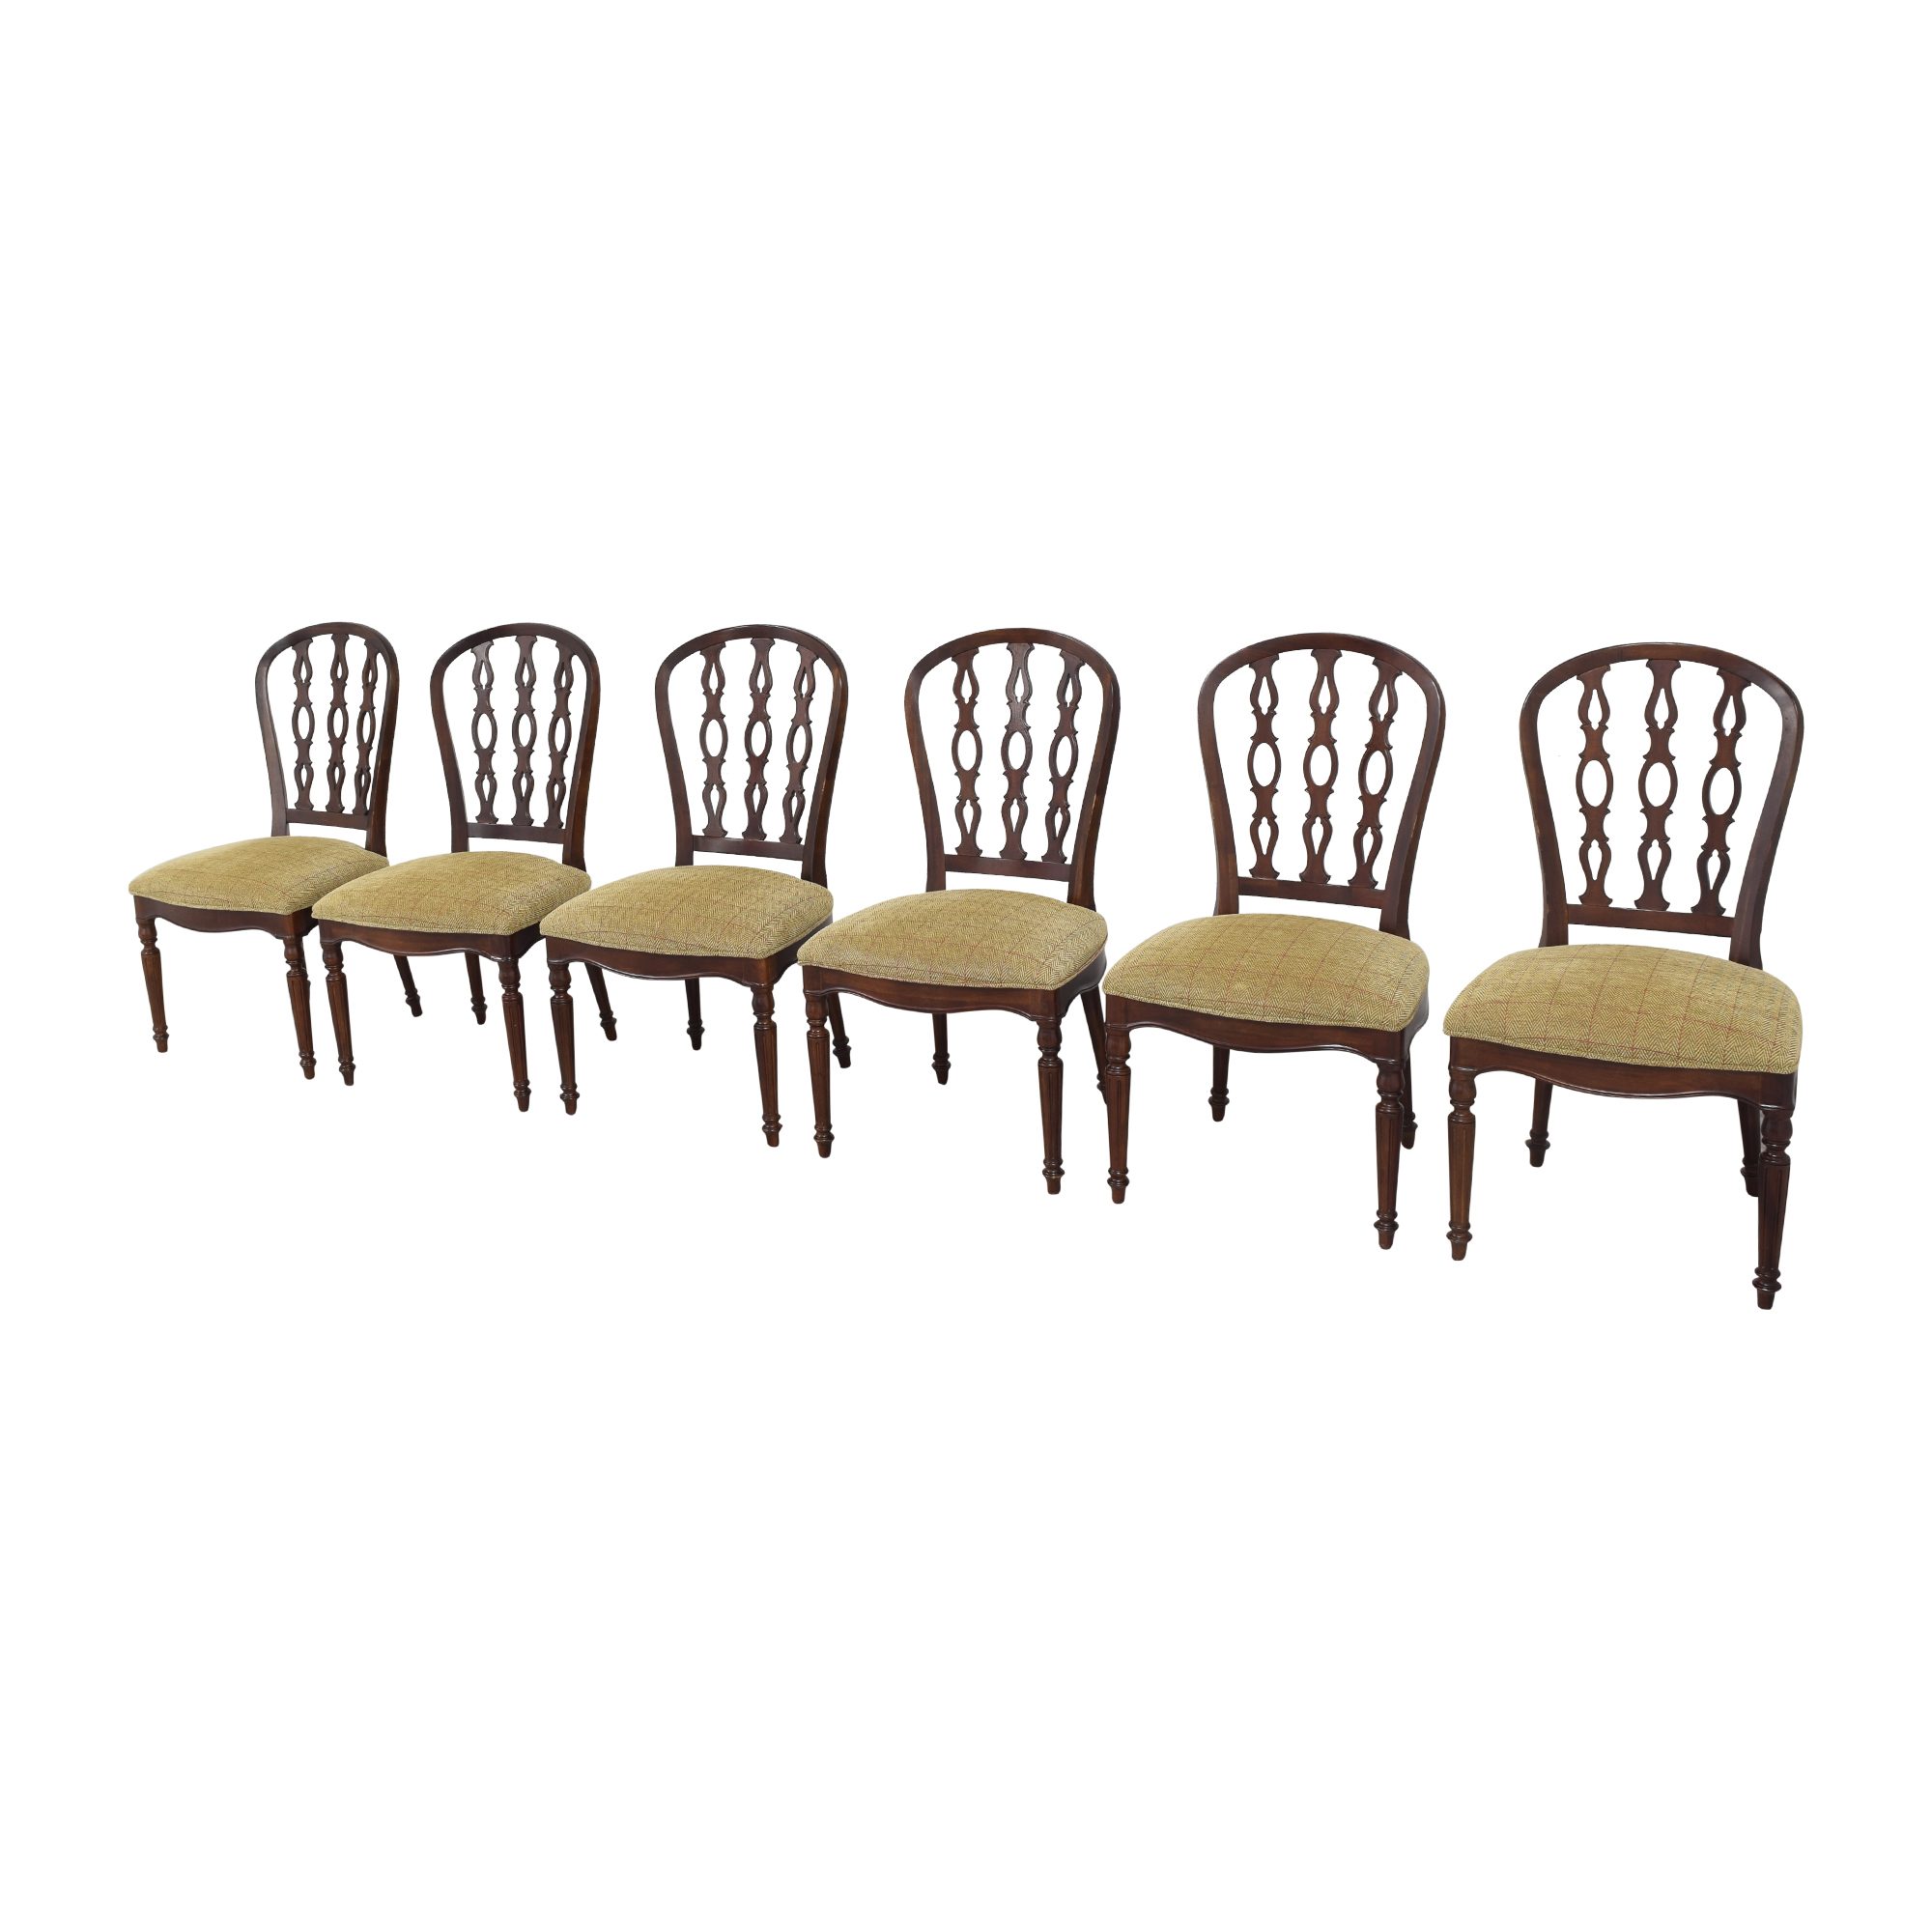 Century Furniture Dining Side Chairs / Dining Chairs